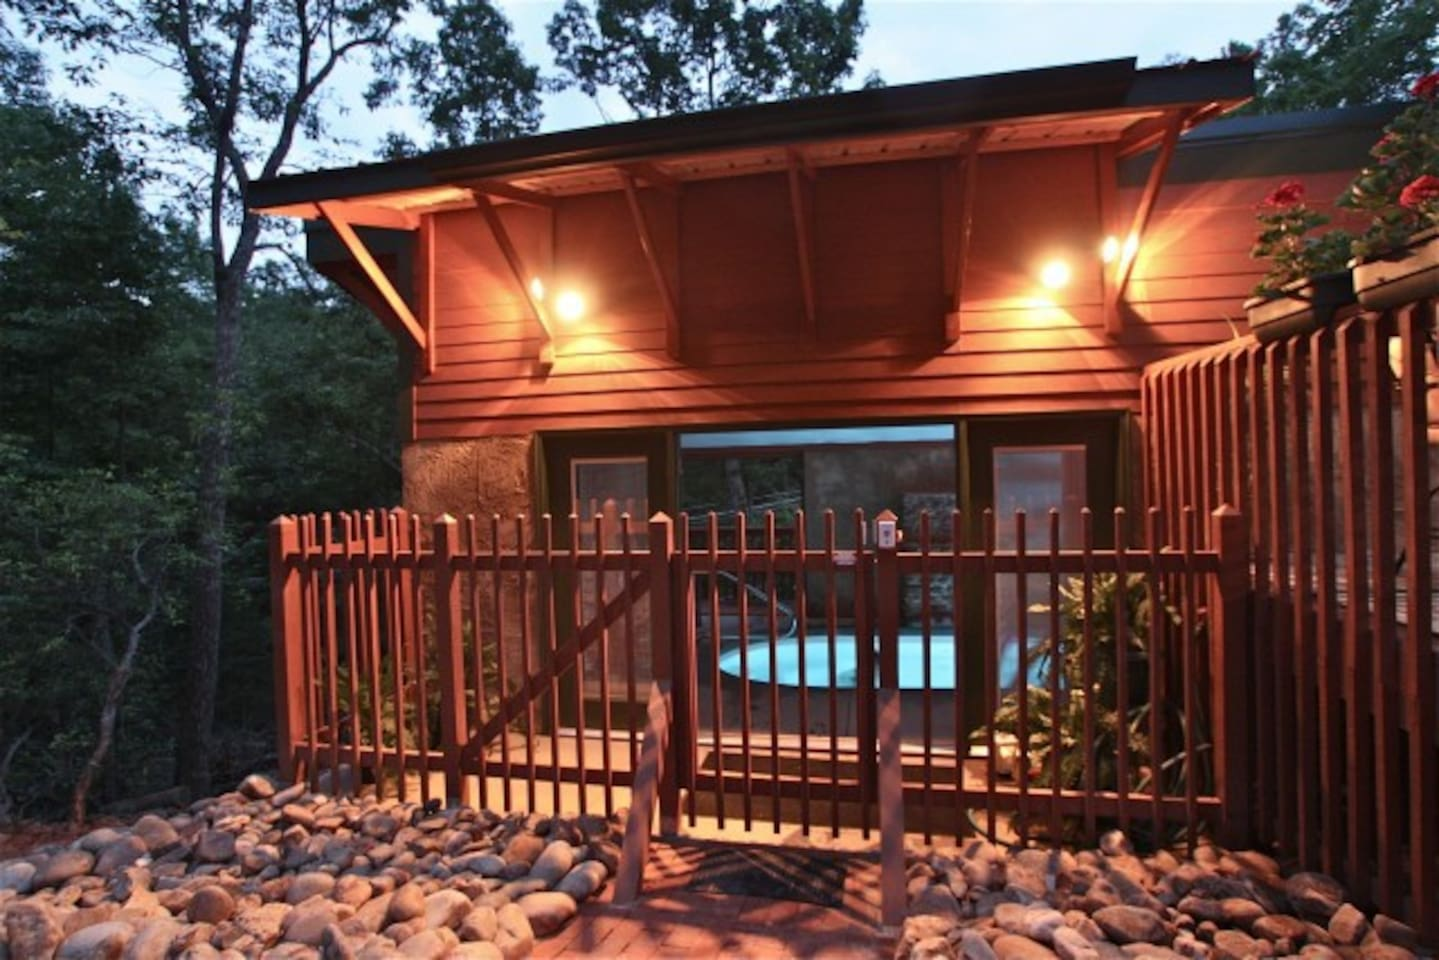 Indoor Pool House Lights are on dimmers in & out